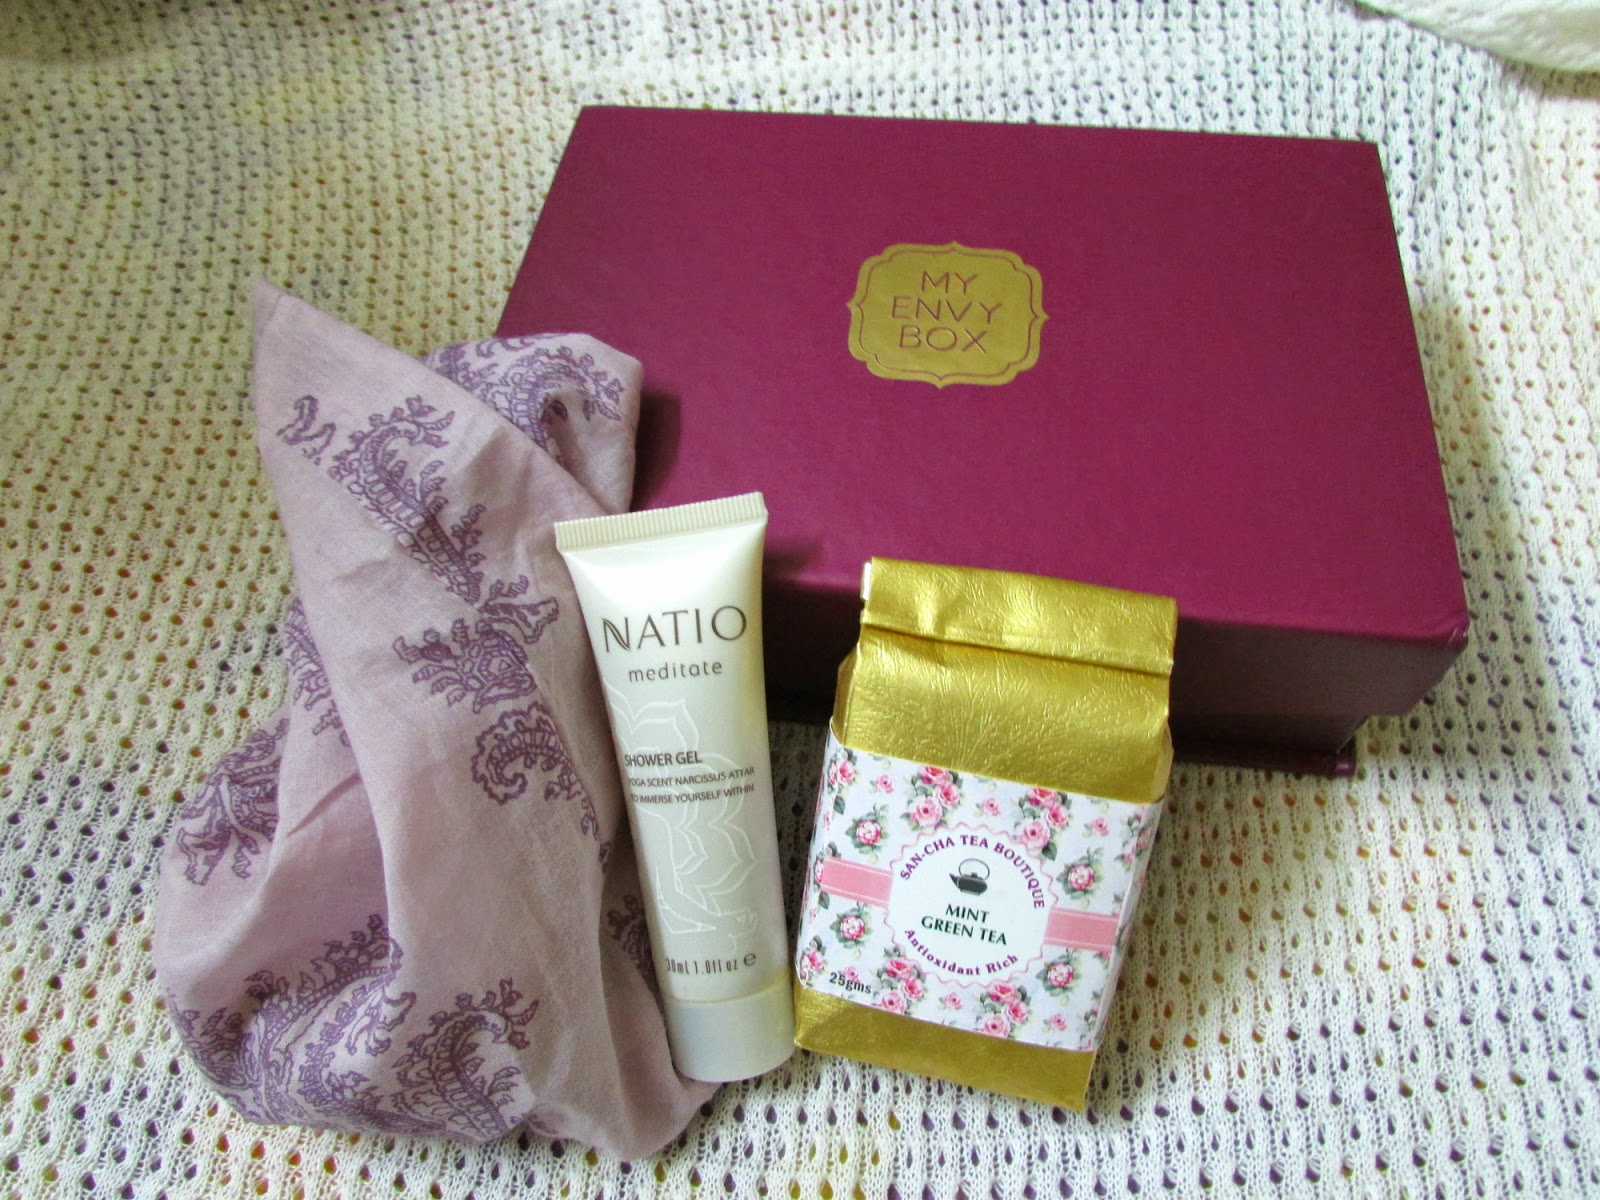 myenvybox, myenvybox review, myenvybox peice, myenvybox india, myenvybox unboxing, myenvybox november detox box, SAN- CHA Tea,NATIO Shower Gel,Suganda soap,Bottega Di Lungavita cream, THALGO Exfoliator, ZA cleansing foam, beauty , fashion,beauty and fashion,beauty blog, fashion blog , indian beauty blog,indian fashion blog, beauty and fashion blog, indian beauty and fashion blog, indian bloggers, indian beauty bloggers, indian fashion bloggers,indian bloggers online, top 10 indian bloggers, top indian bloggers,top 10 fashion bloggers, indian bloggers on blogspot,home remedies, how to